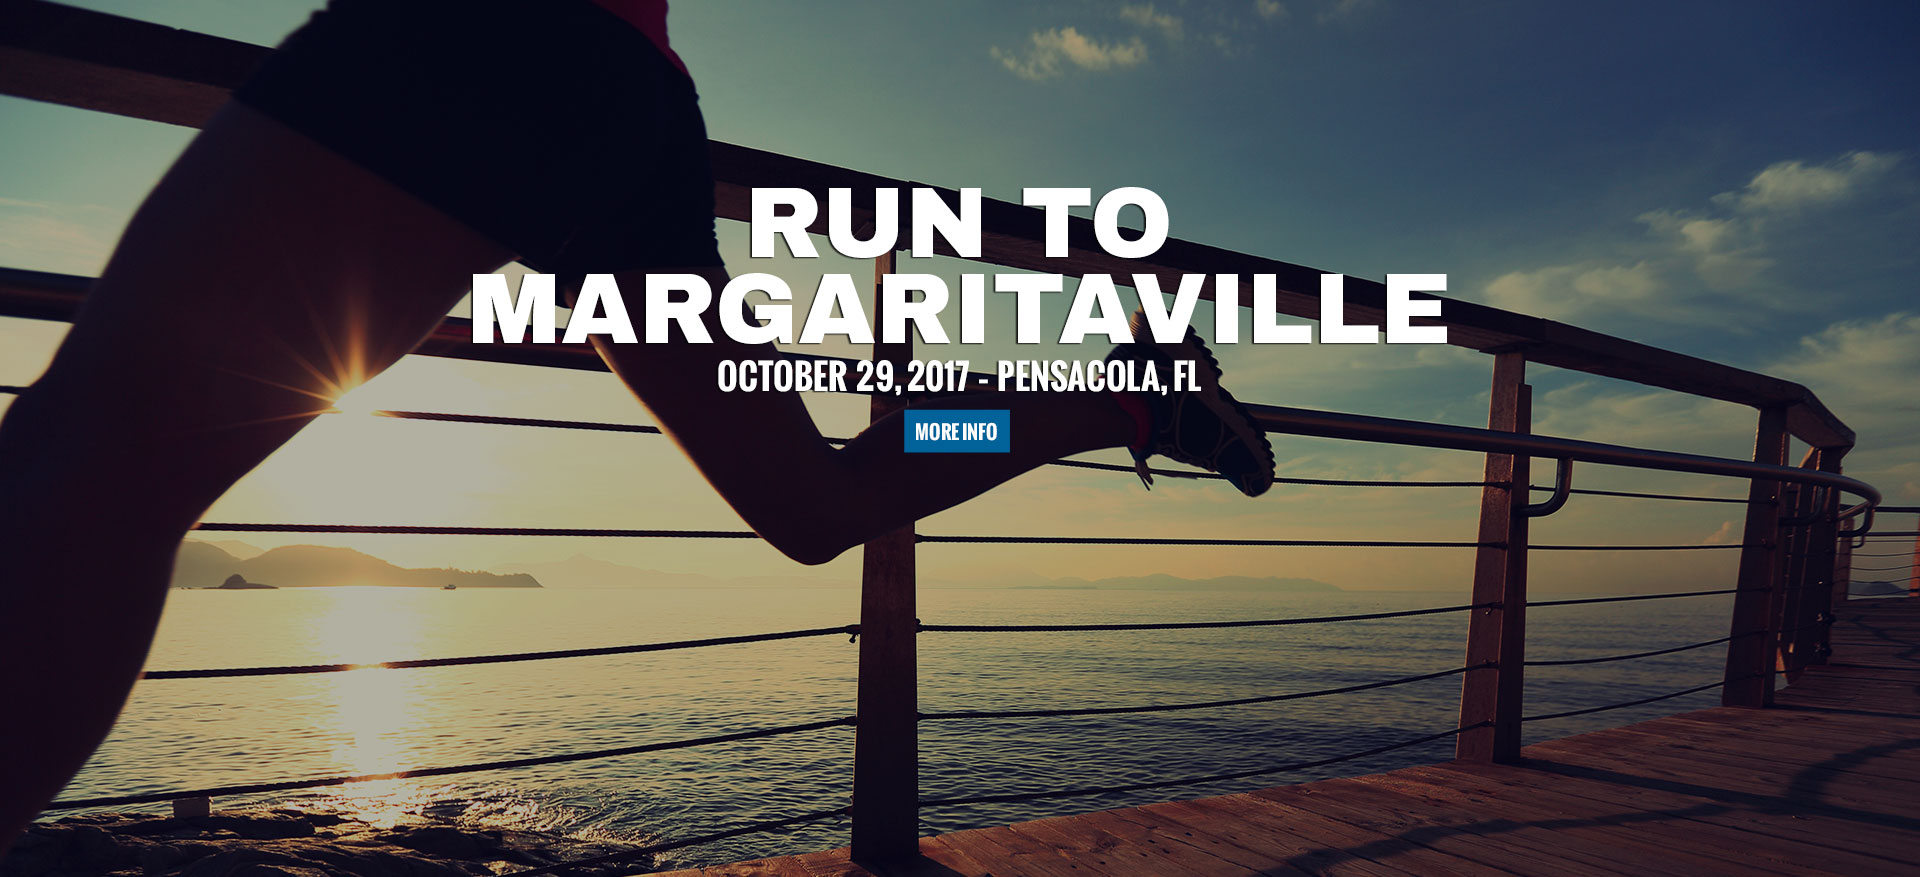 Run To Margaritaville